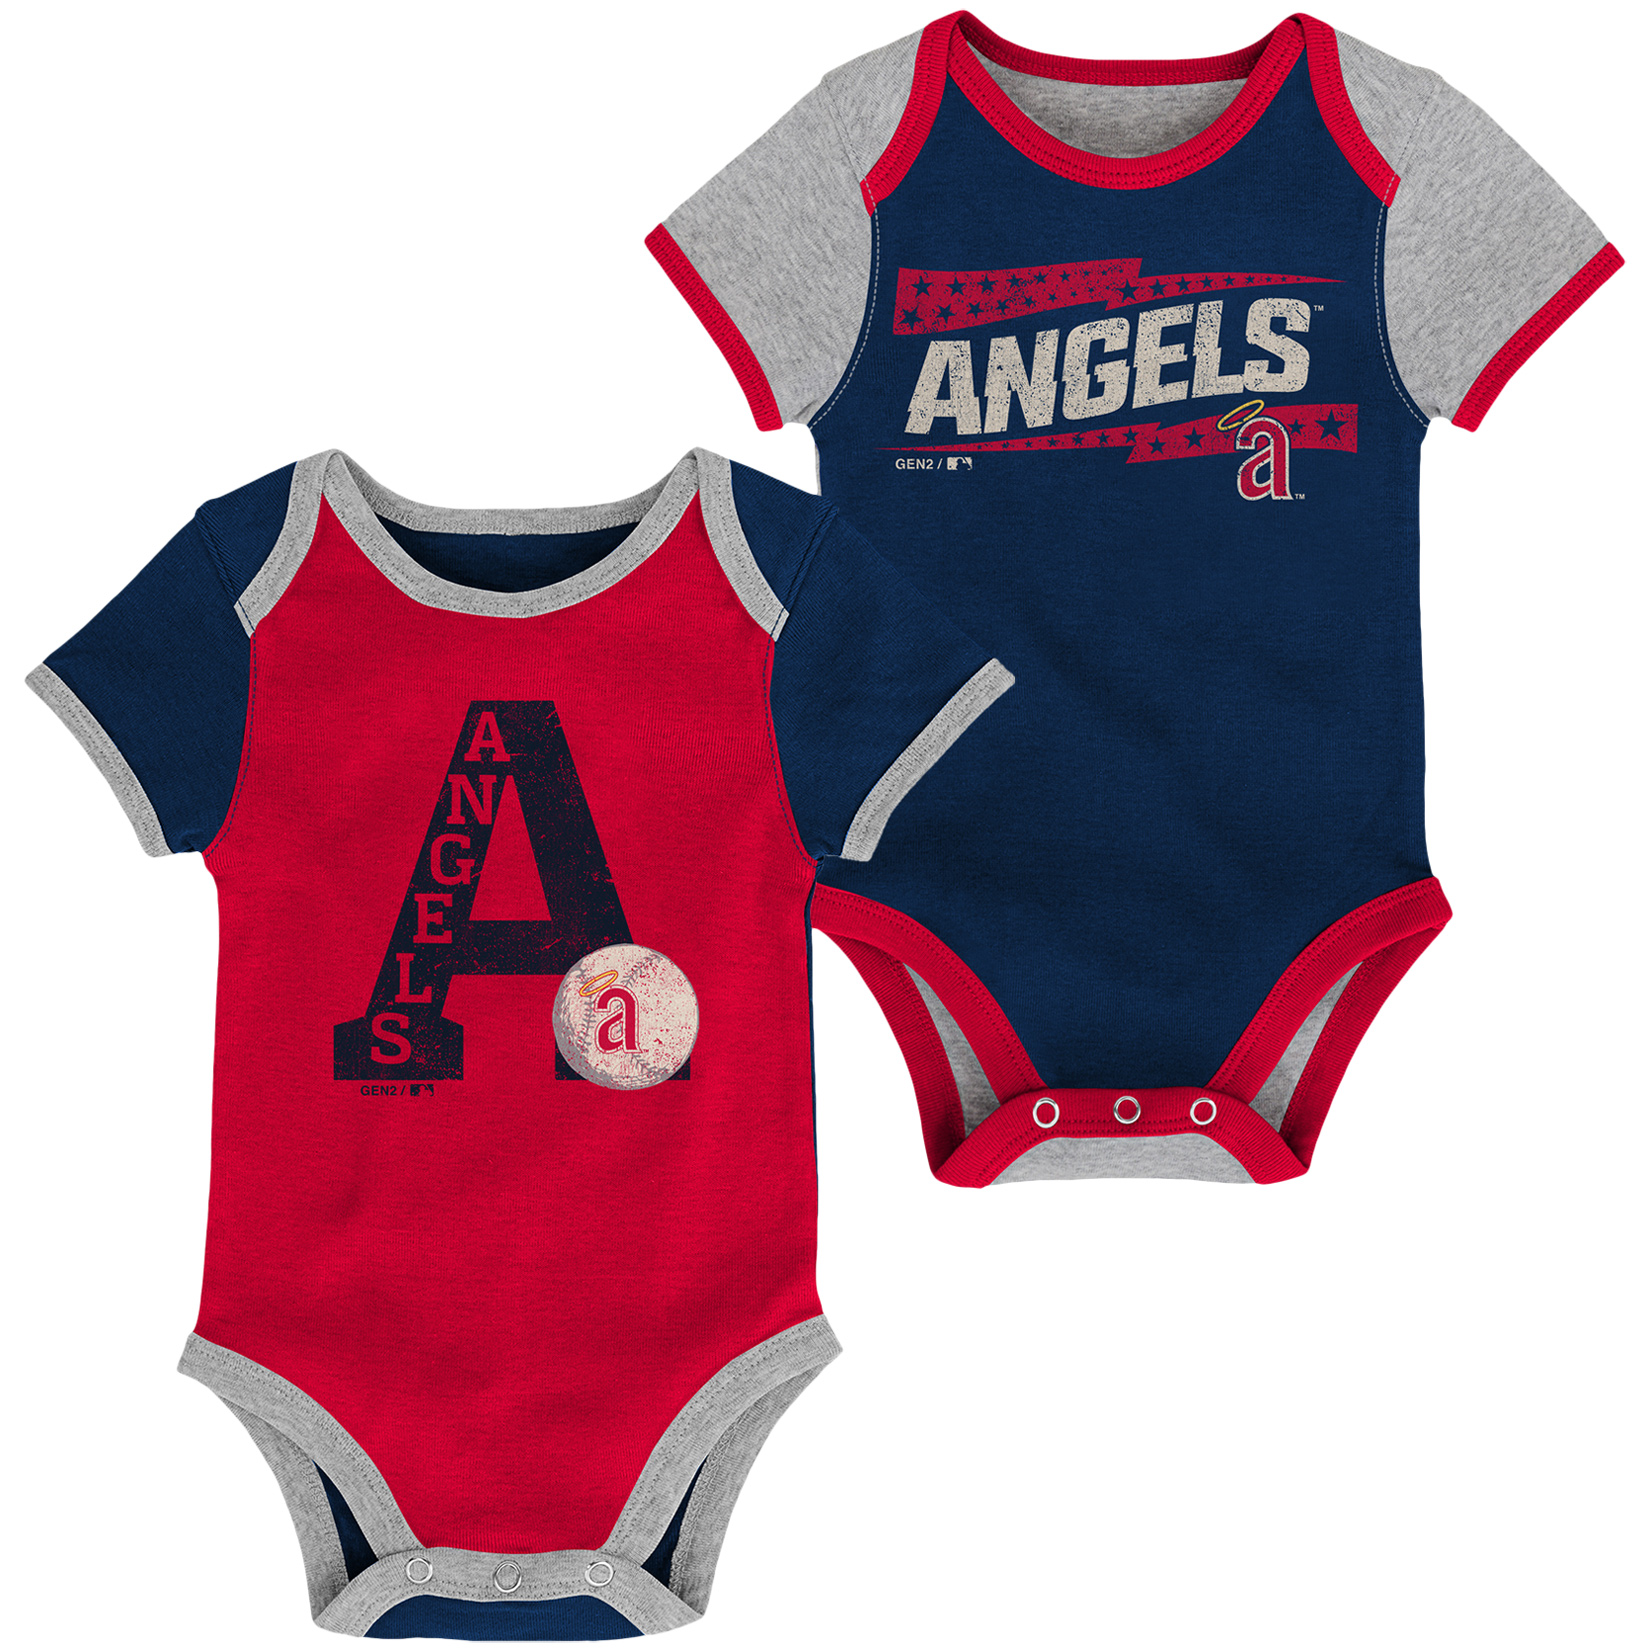 Los Angeles Angels Infant Baseball Star Two-Pack Bodysuit Set - Navy/Red